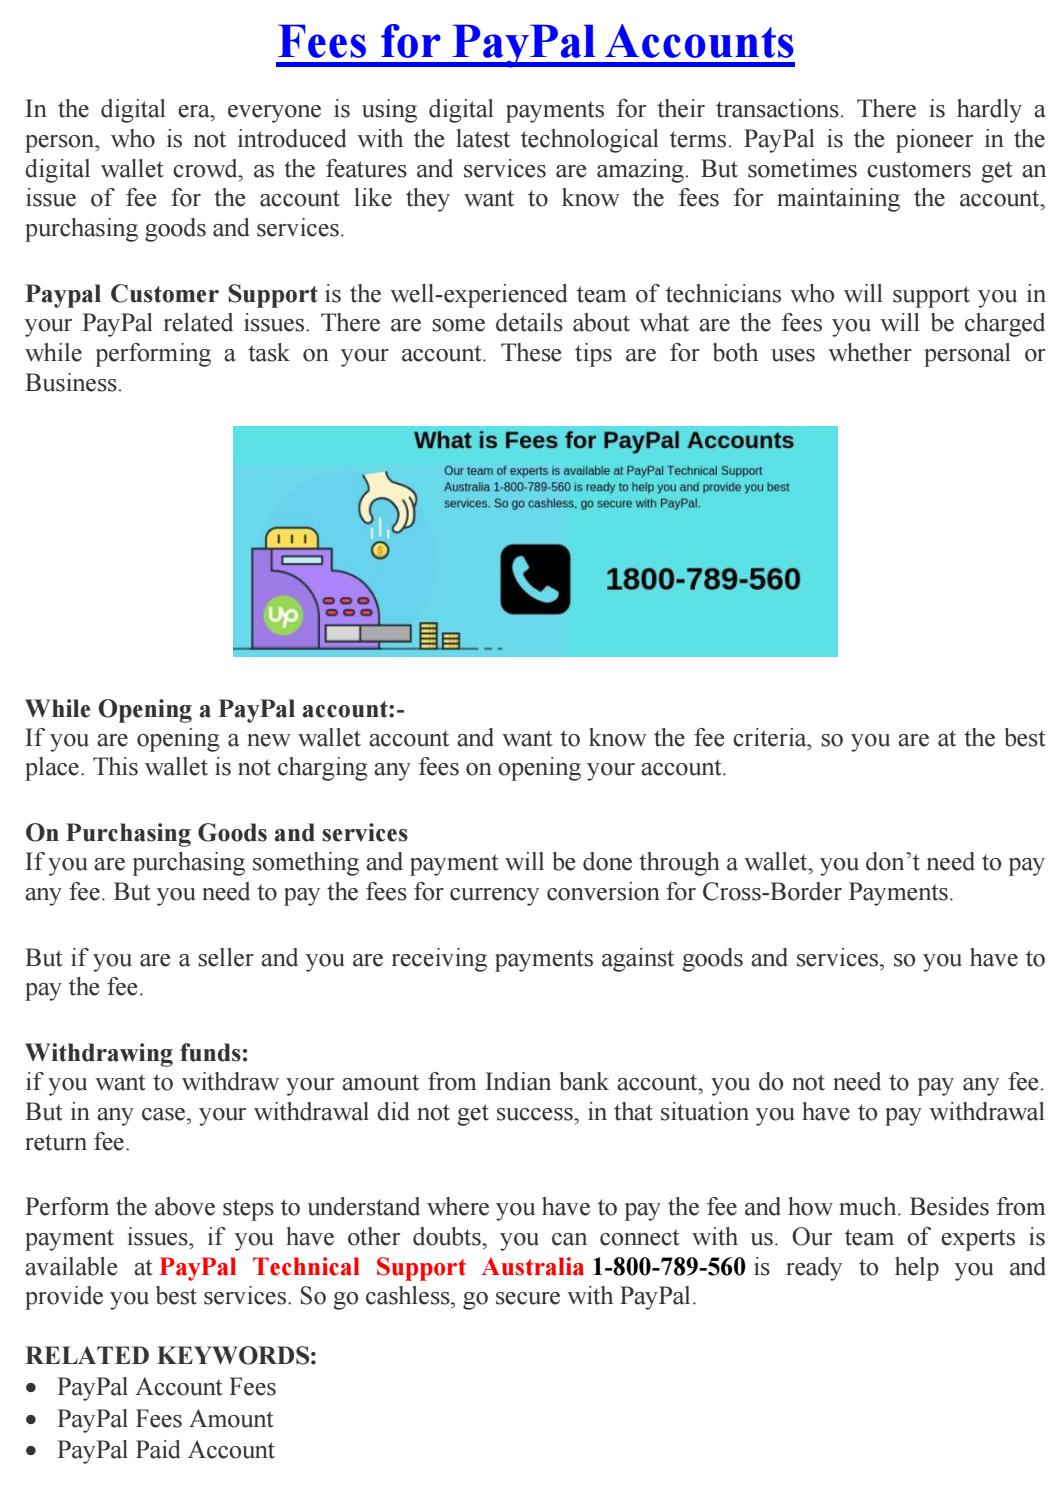 Fees For PayPal by emmacooperd3bk - issuu